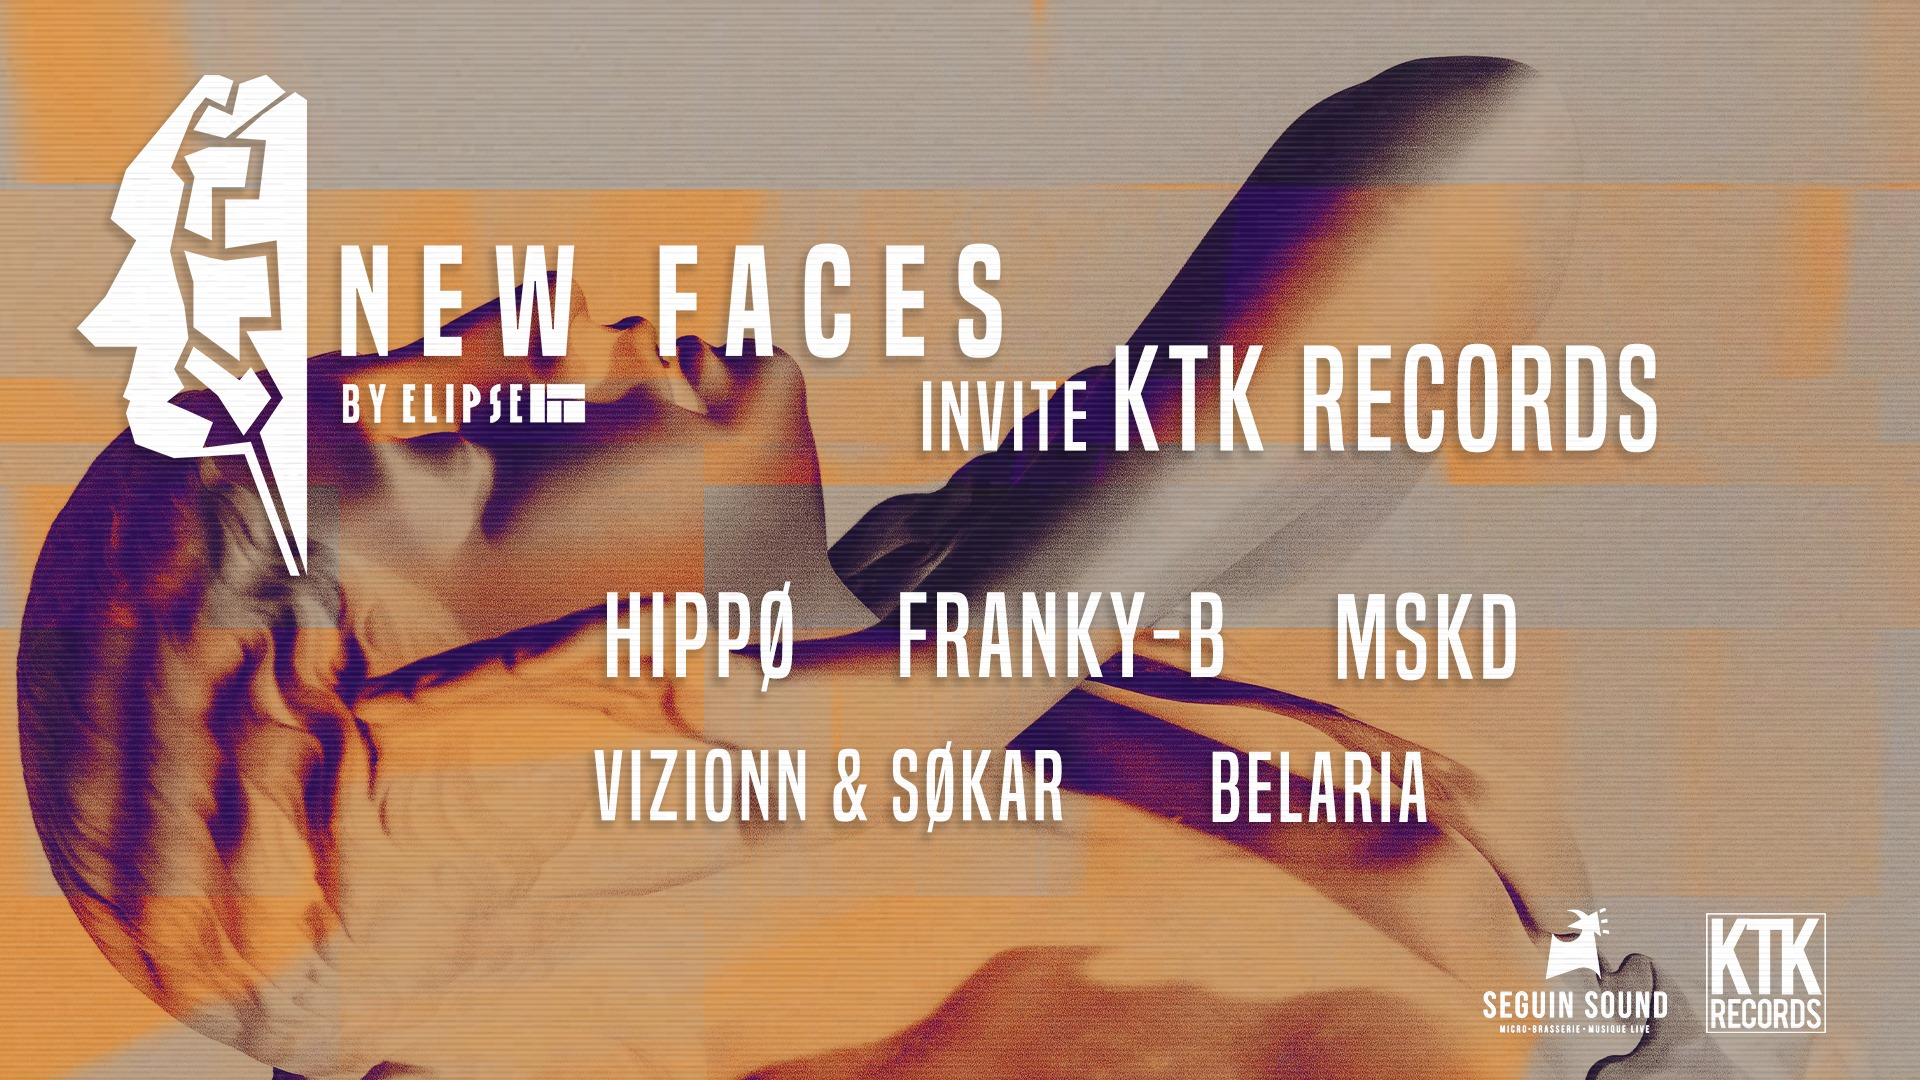 New Faces by Elipse invite KTK Records